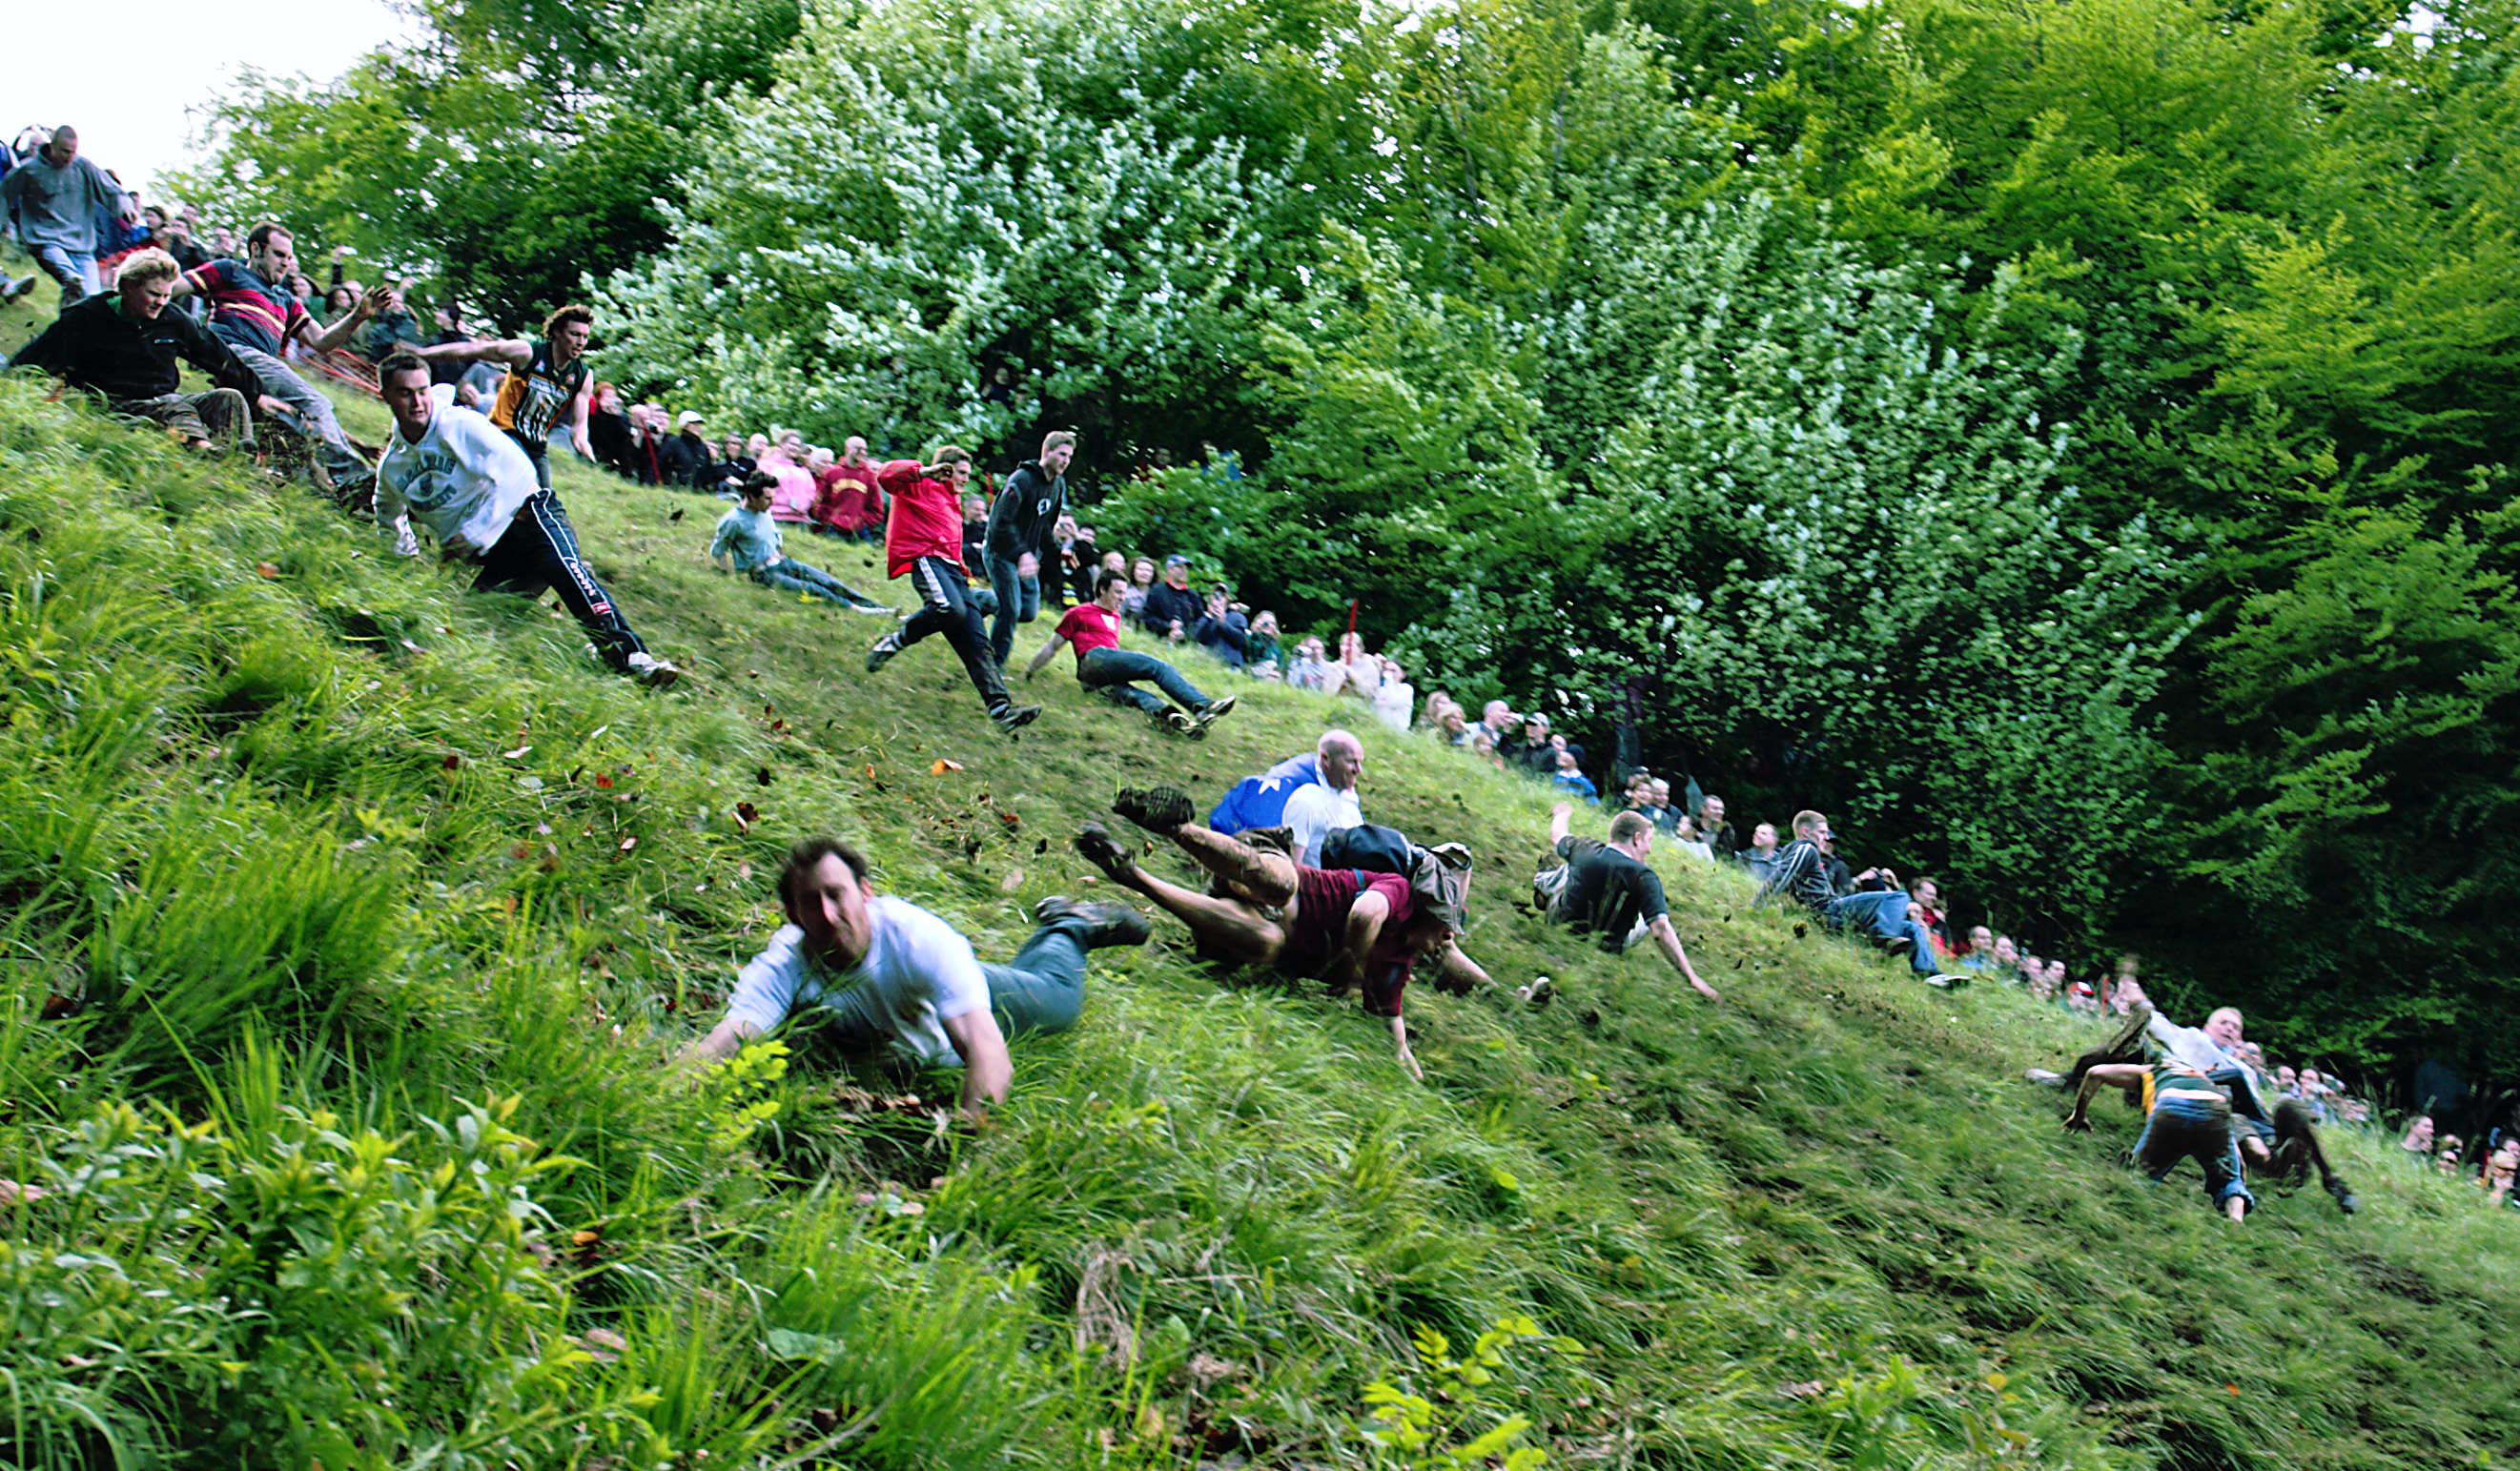 Cooper's Hill Cheese-Rolling Brockworth, England - Spring events